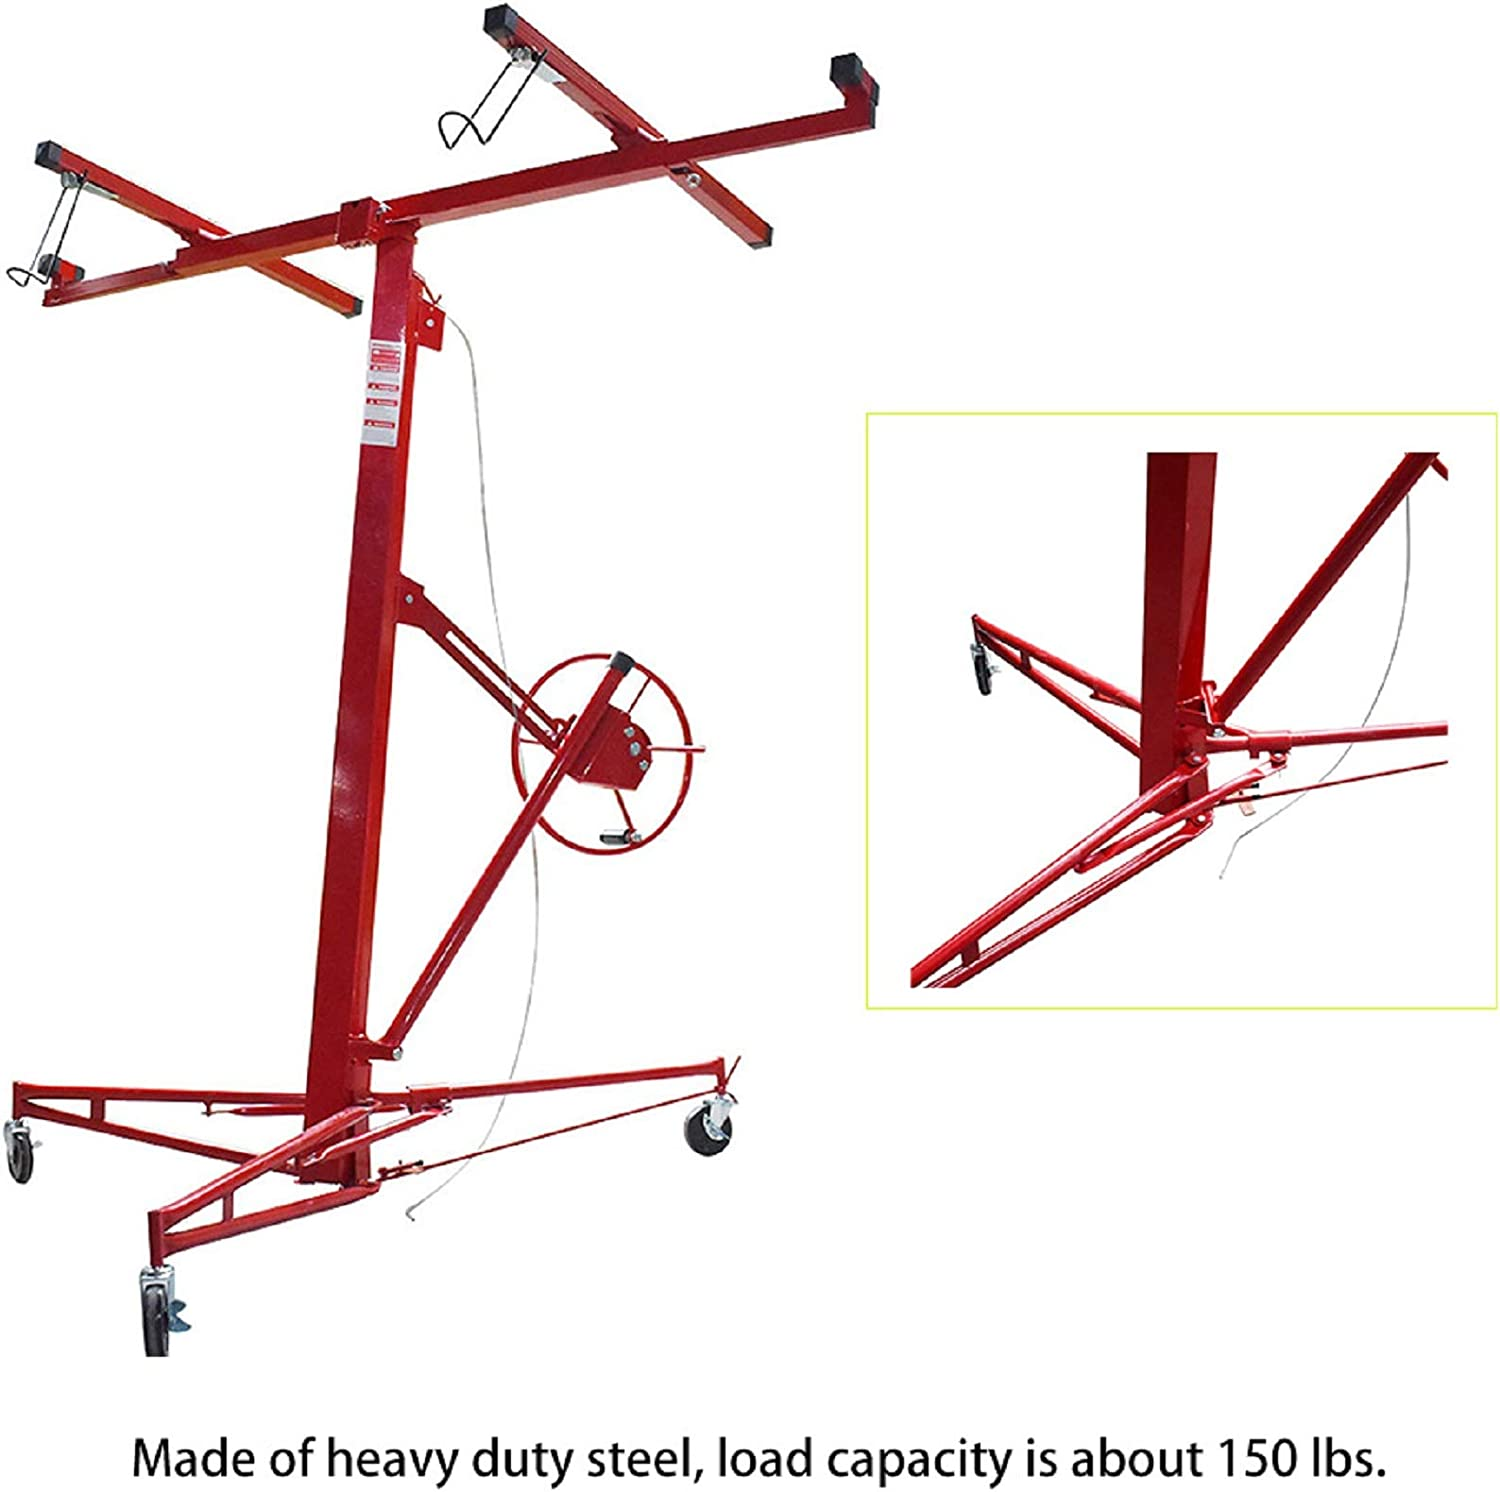 WFLNHB 16FT Drywall Lift Panel Hoist Jack Lifter Jack Rolling Caster Wheel Drywall Lift Construction Tool Red